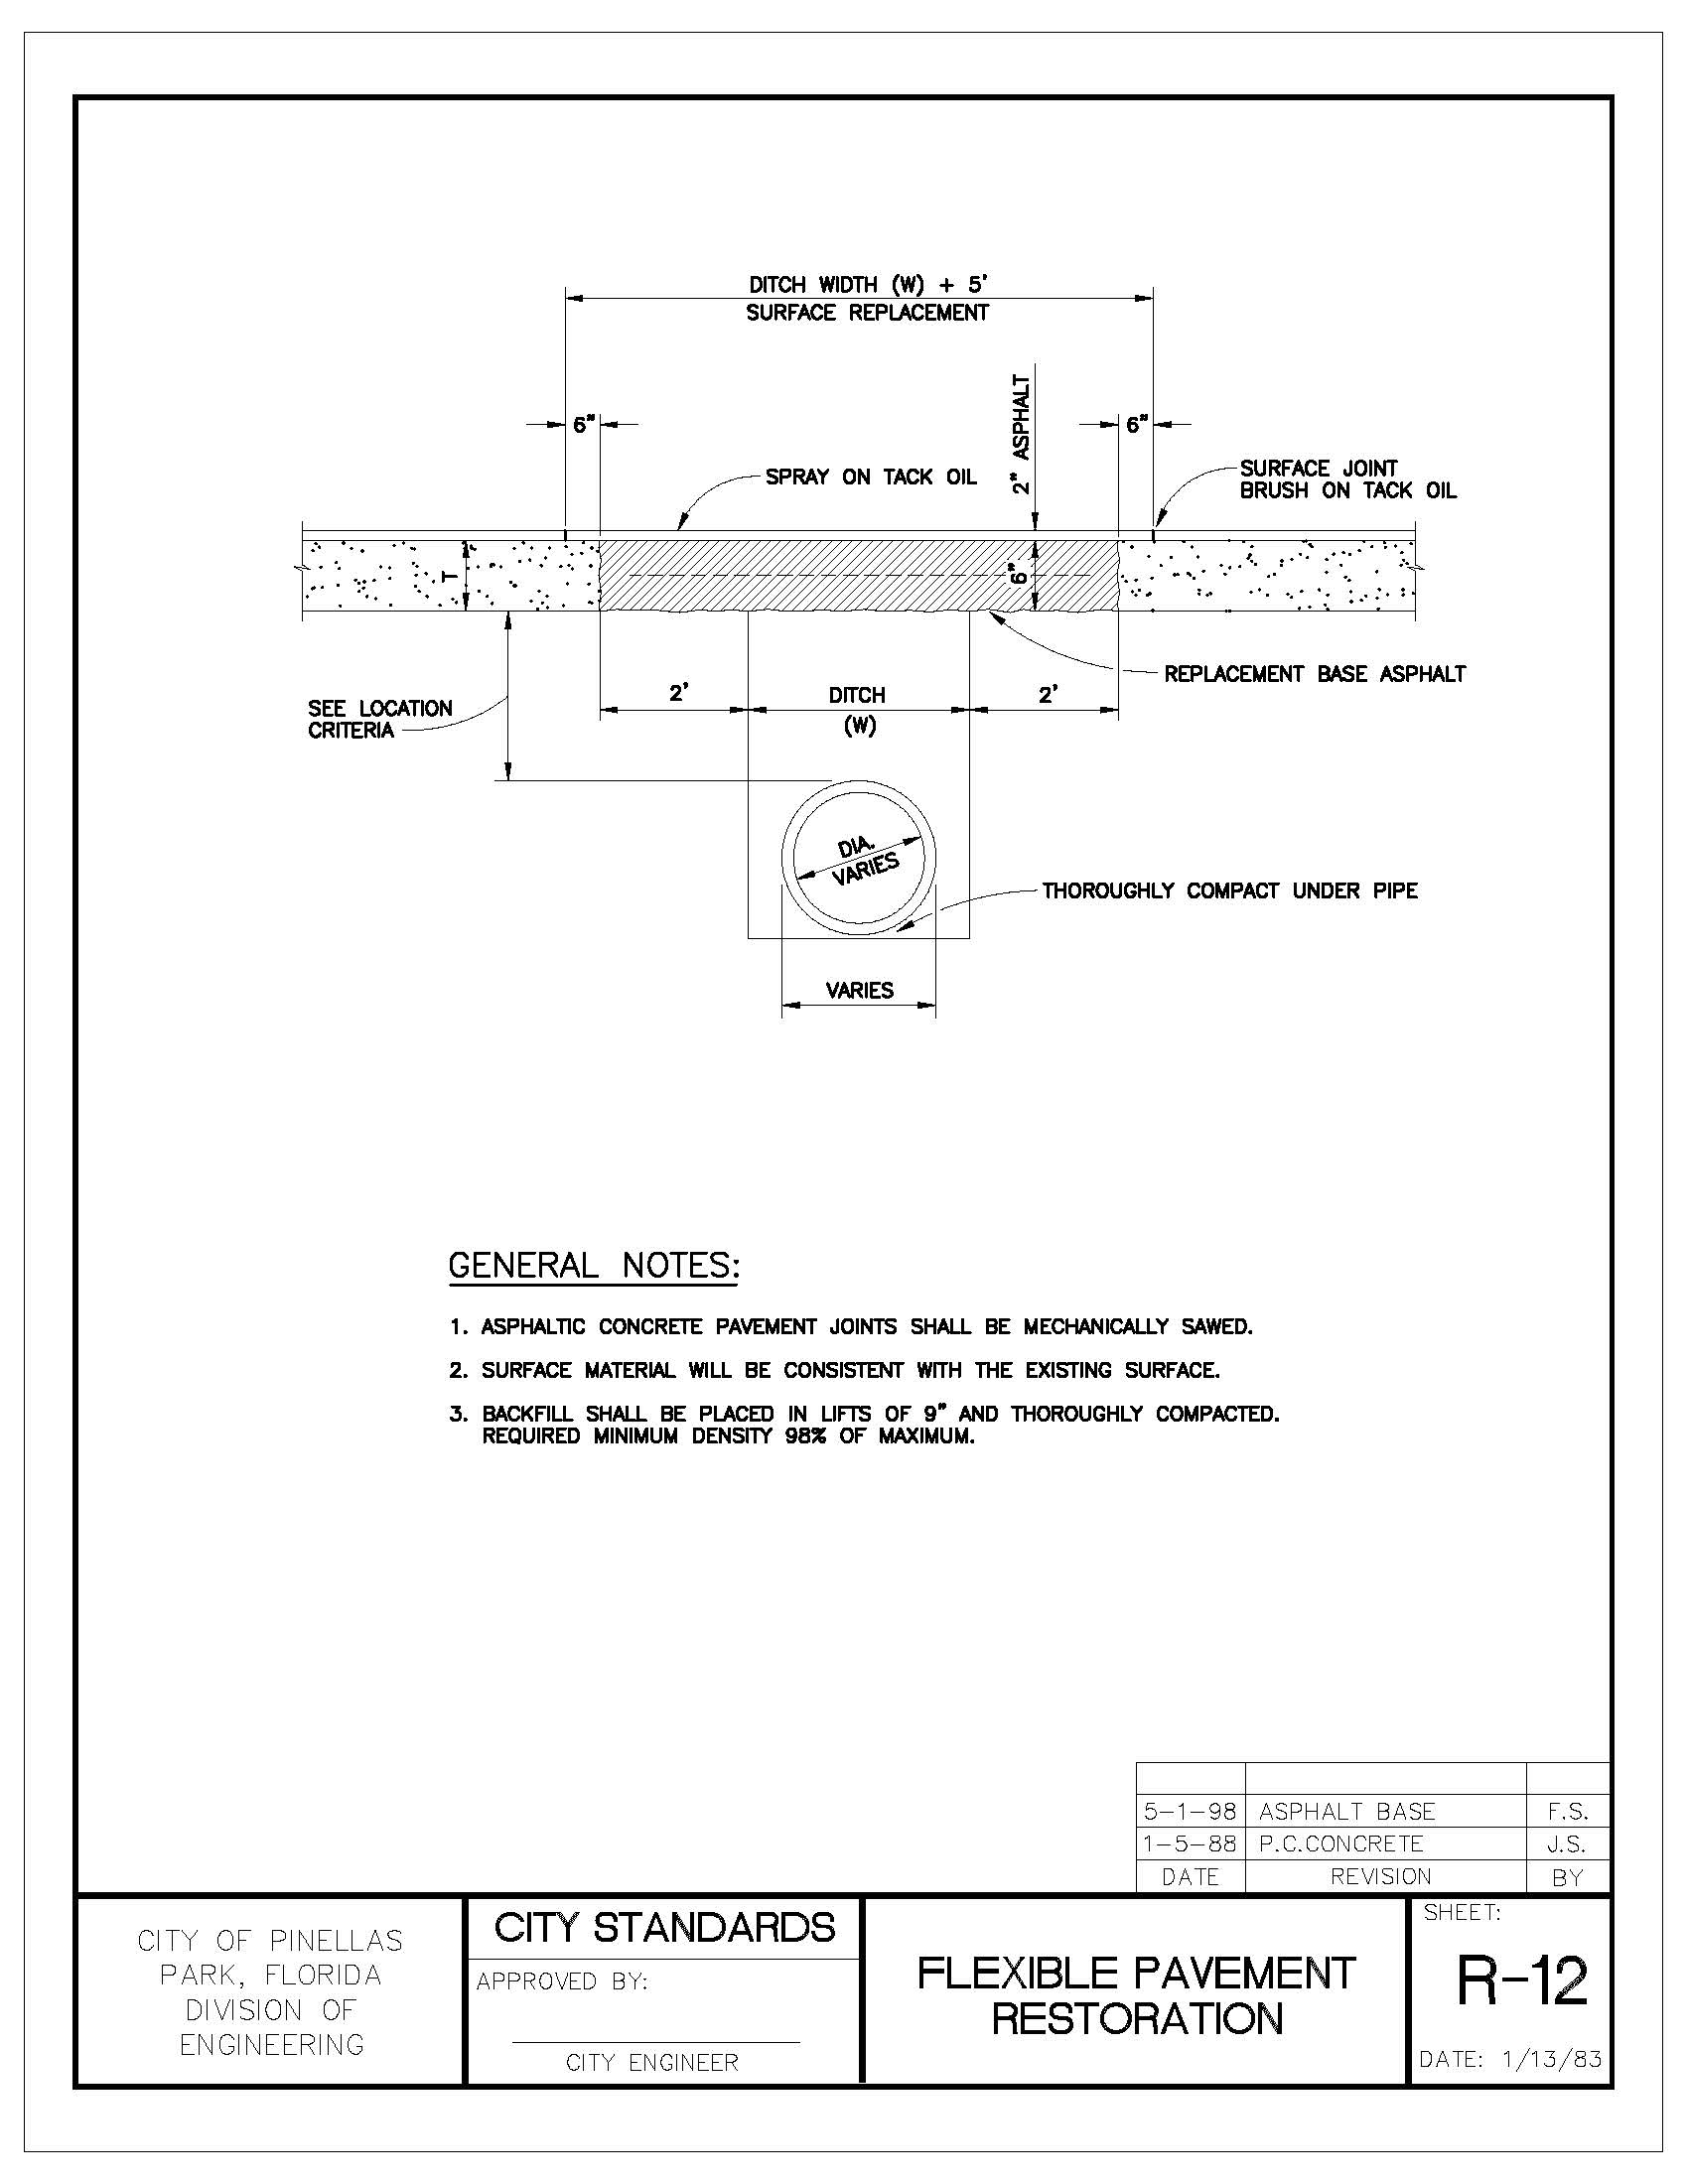 Engineering Manual v5_201908121127291138_Page_049 flexible pavement restoration